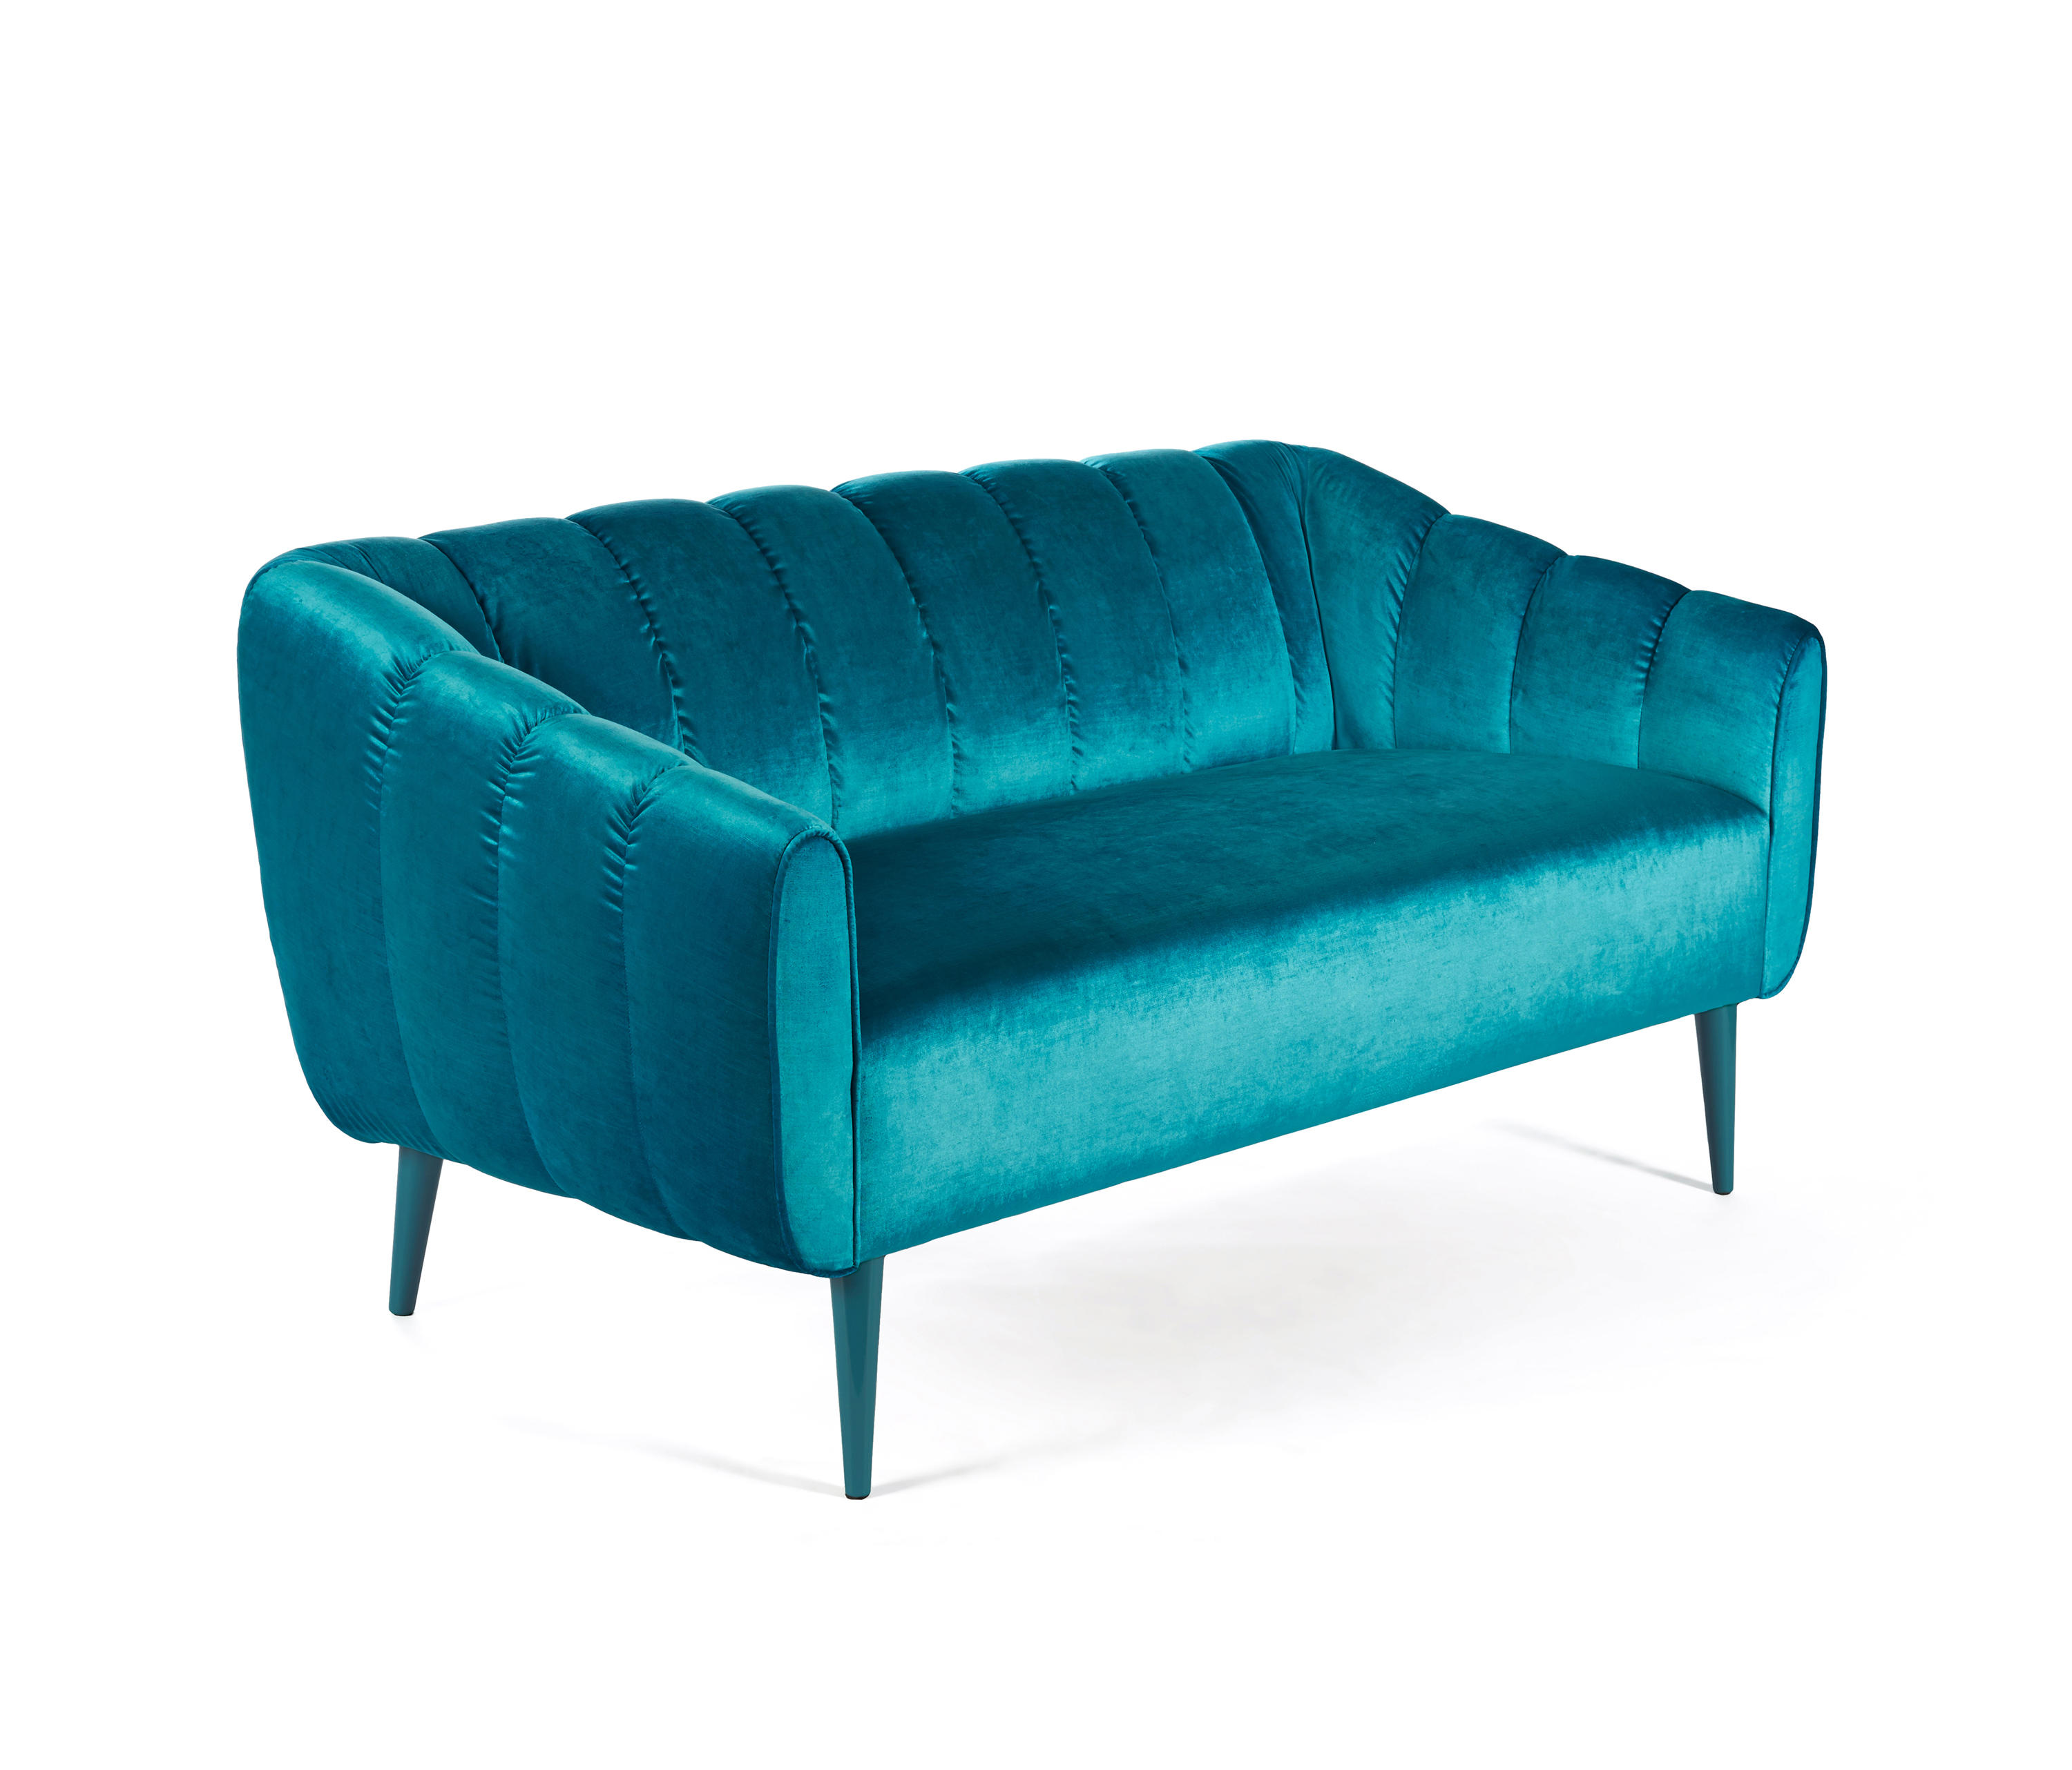 Houston Sofa By Munna Sofas